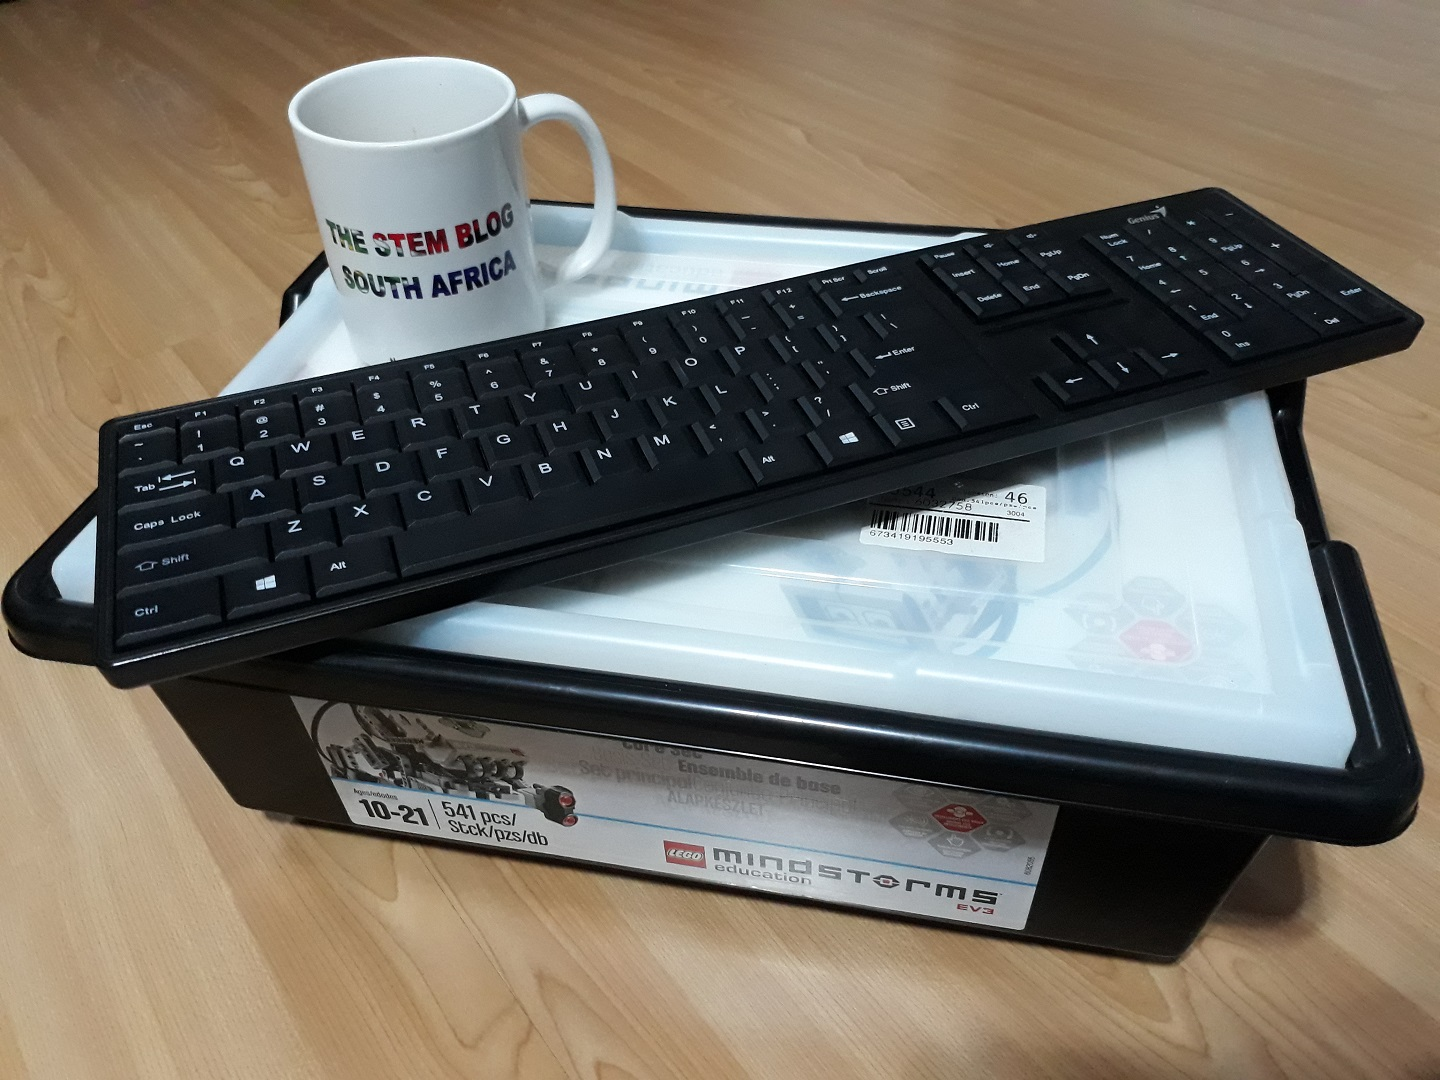 Lego Mindstorms EV3 core set with coffee mug and keyboard